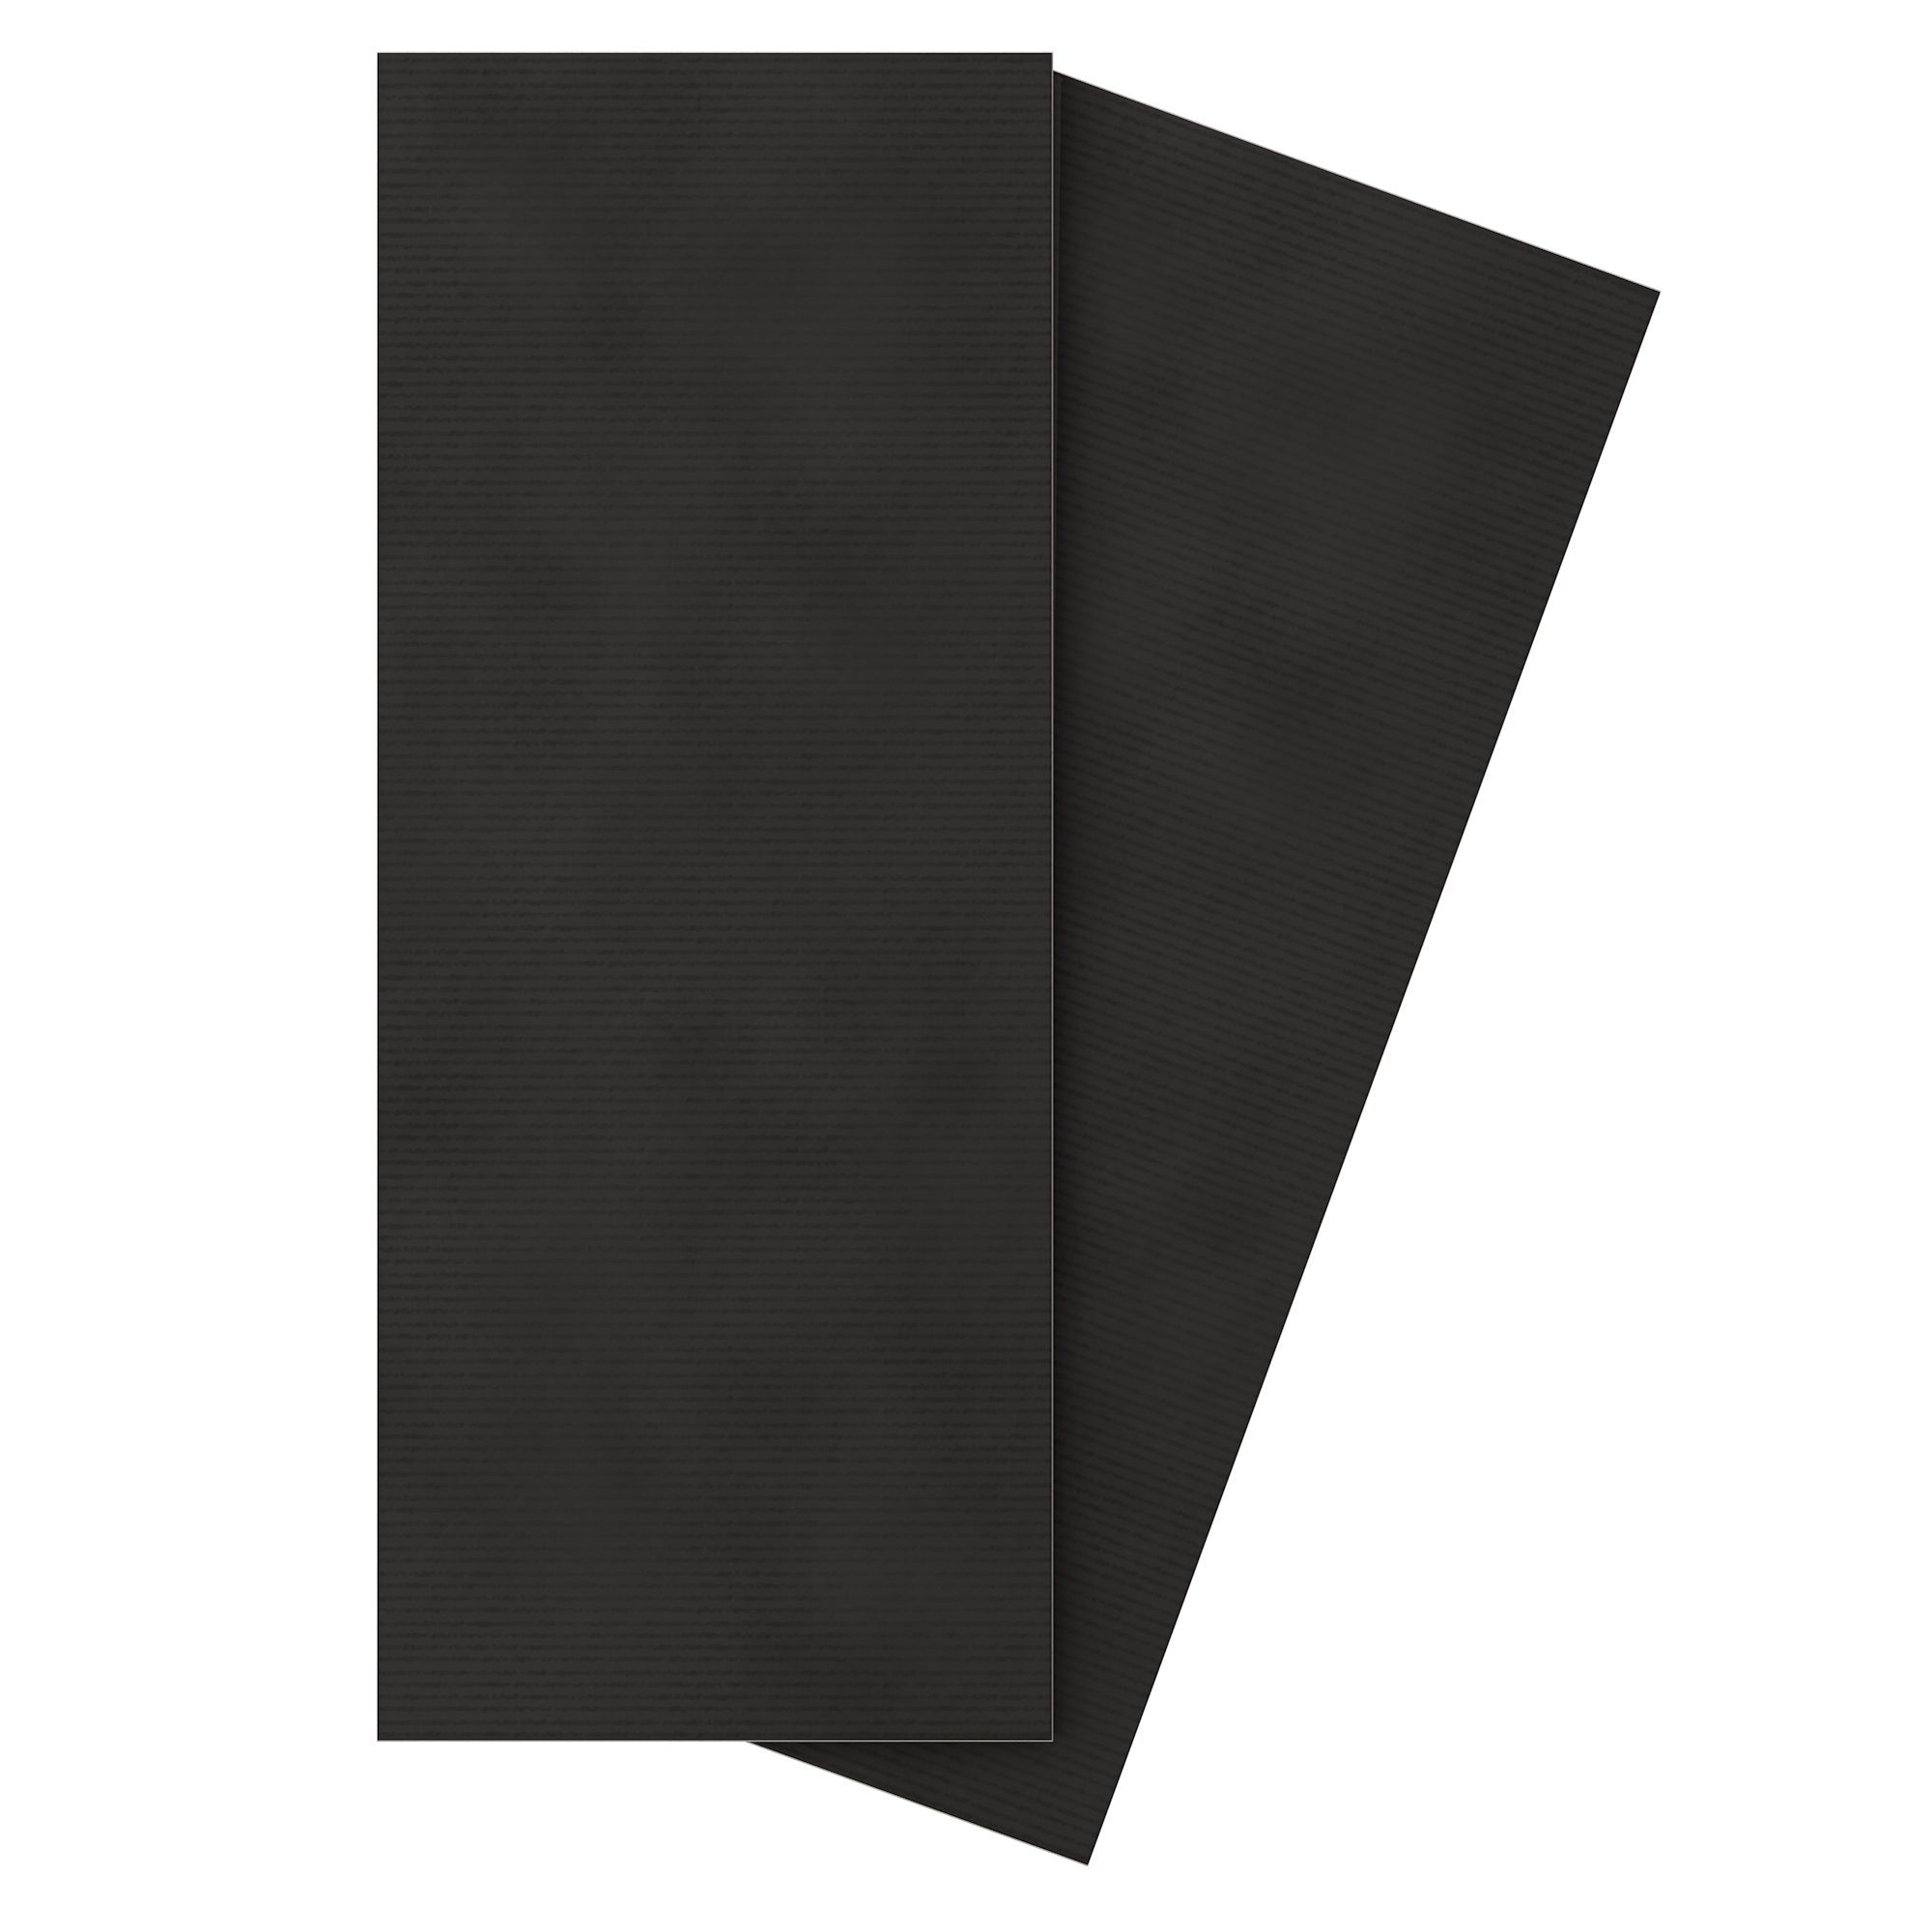 Voyage Anthracite Ceramic Wall Tile, Pack Of 10, (l)500mm (w)200mm